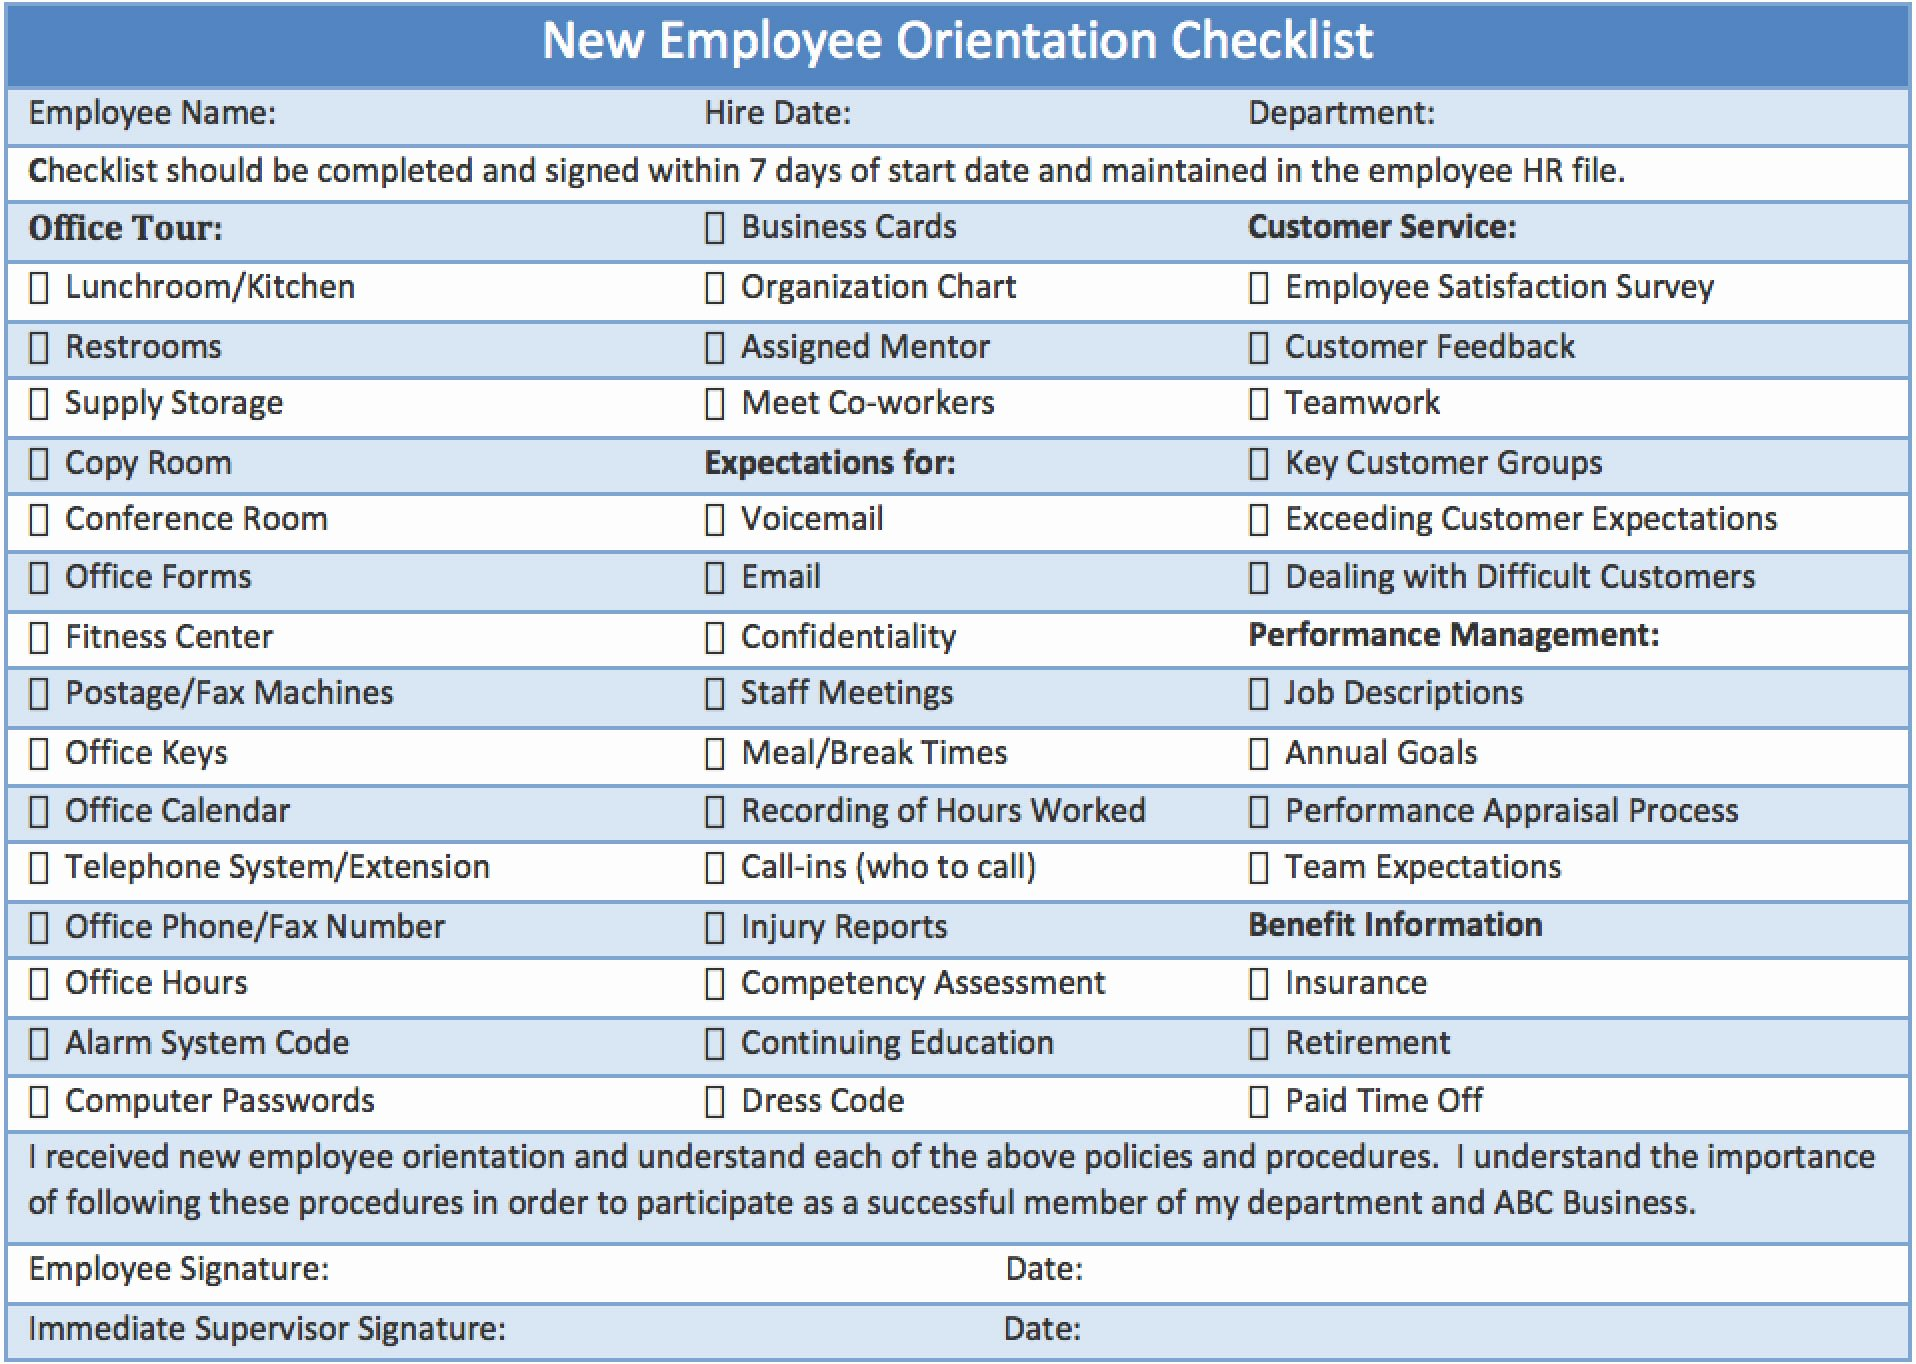 New Employee orientation Checklist Template Fresh Checklist New Employee orientation Download Template Ml